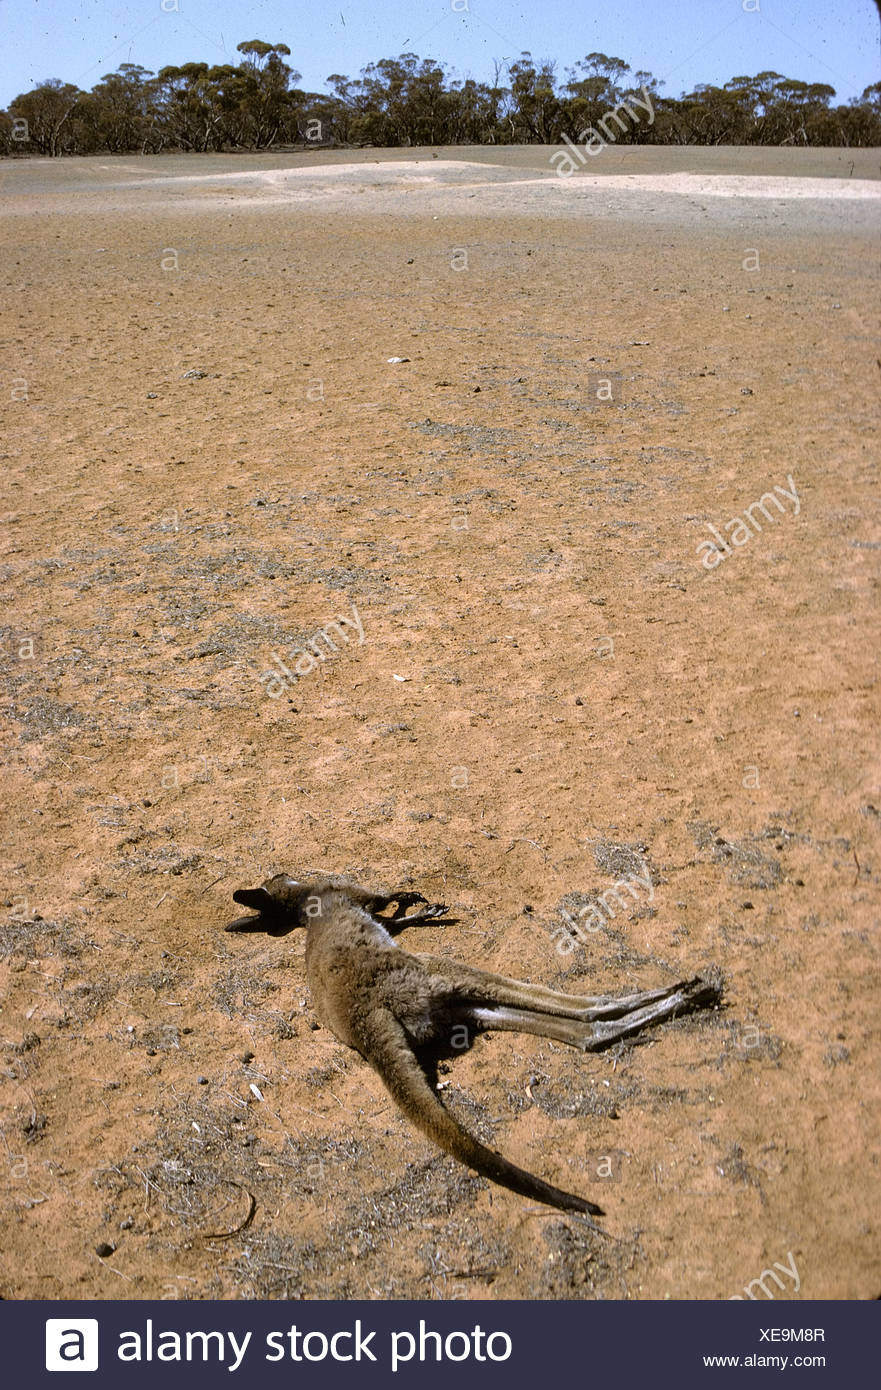 DROUGHT - Stock Image